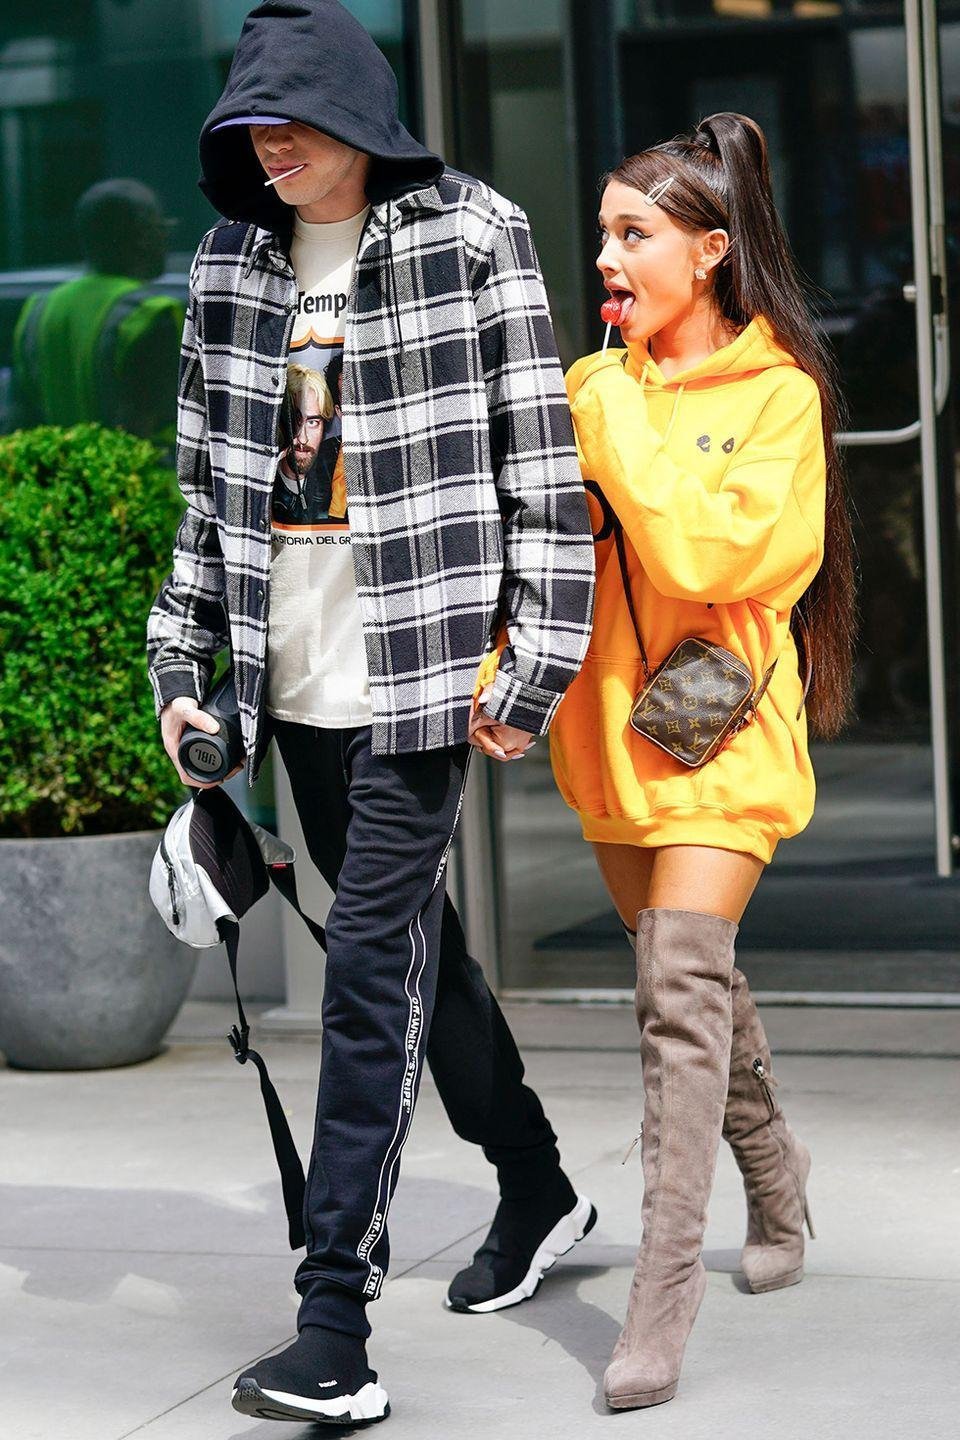 "<p>Few people saw this coming. After just weeks of dating, Ariana and Pete were engaged in June 2018. Pete told <a class=""link rapid-noclick-resp"" href=""https://www.gq.com/story/pete-davidson-style-2018"" rel=""nofollow noopener"" target=""_blank"" data-ylk=""slk:GQ""><em>GQ</em></a> they went engagement ring shopping the day they met, so hey.</p>"